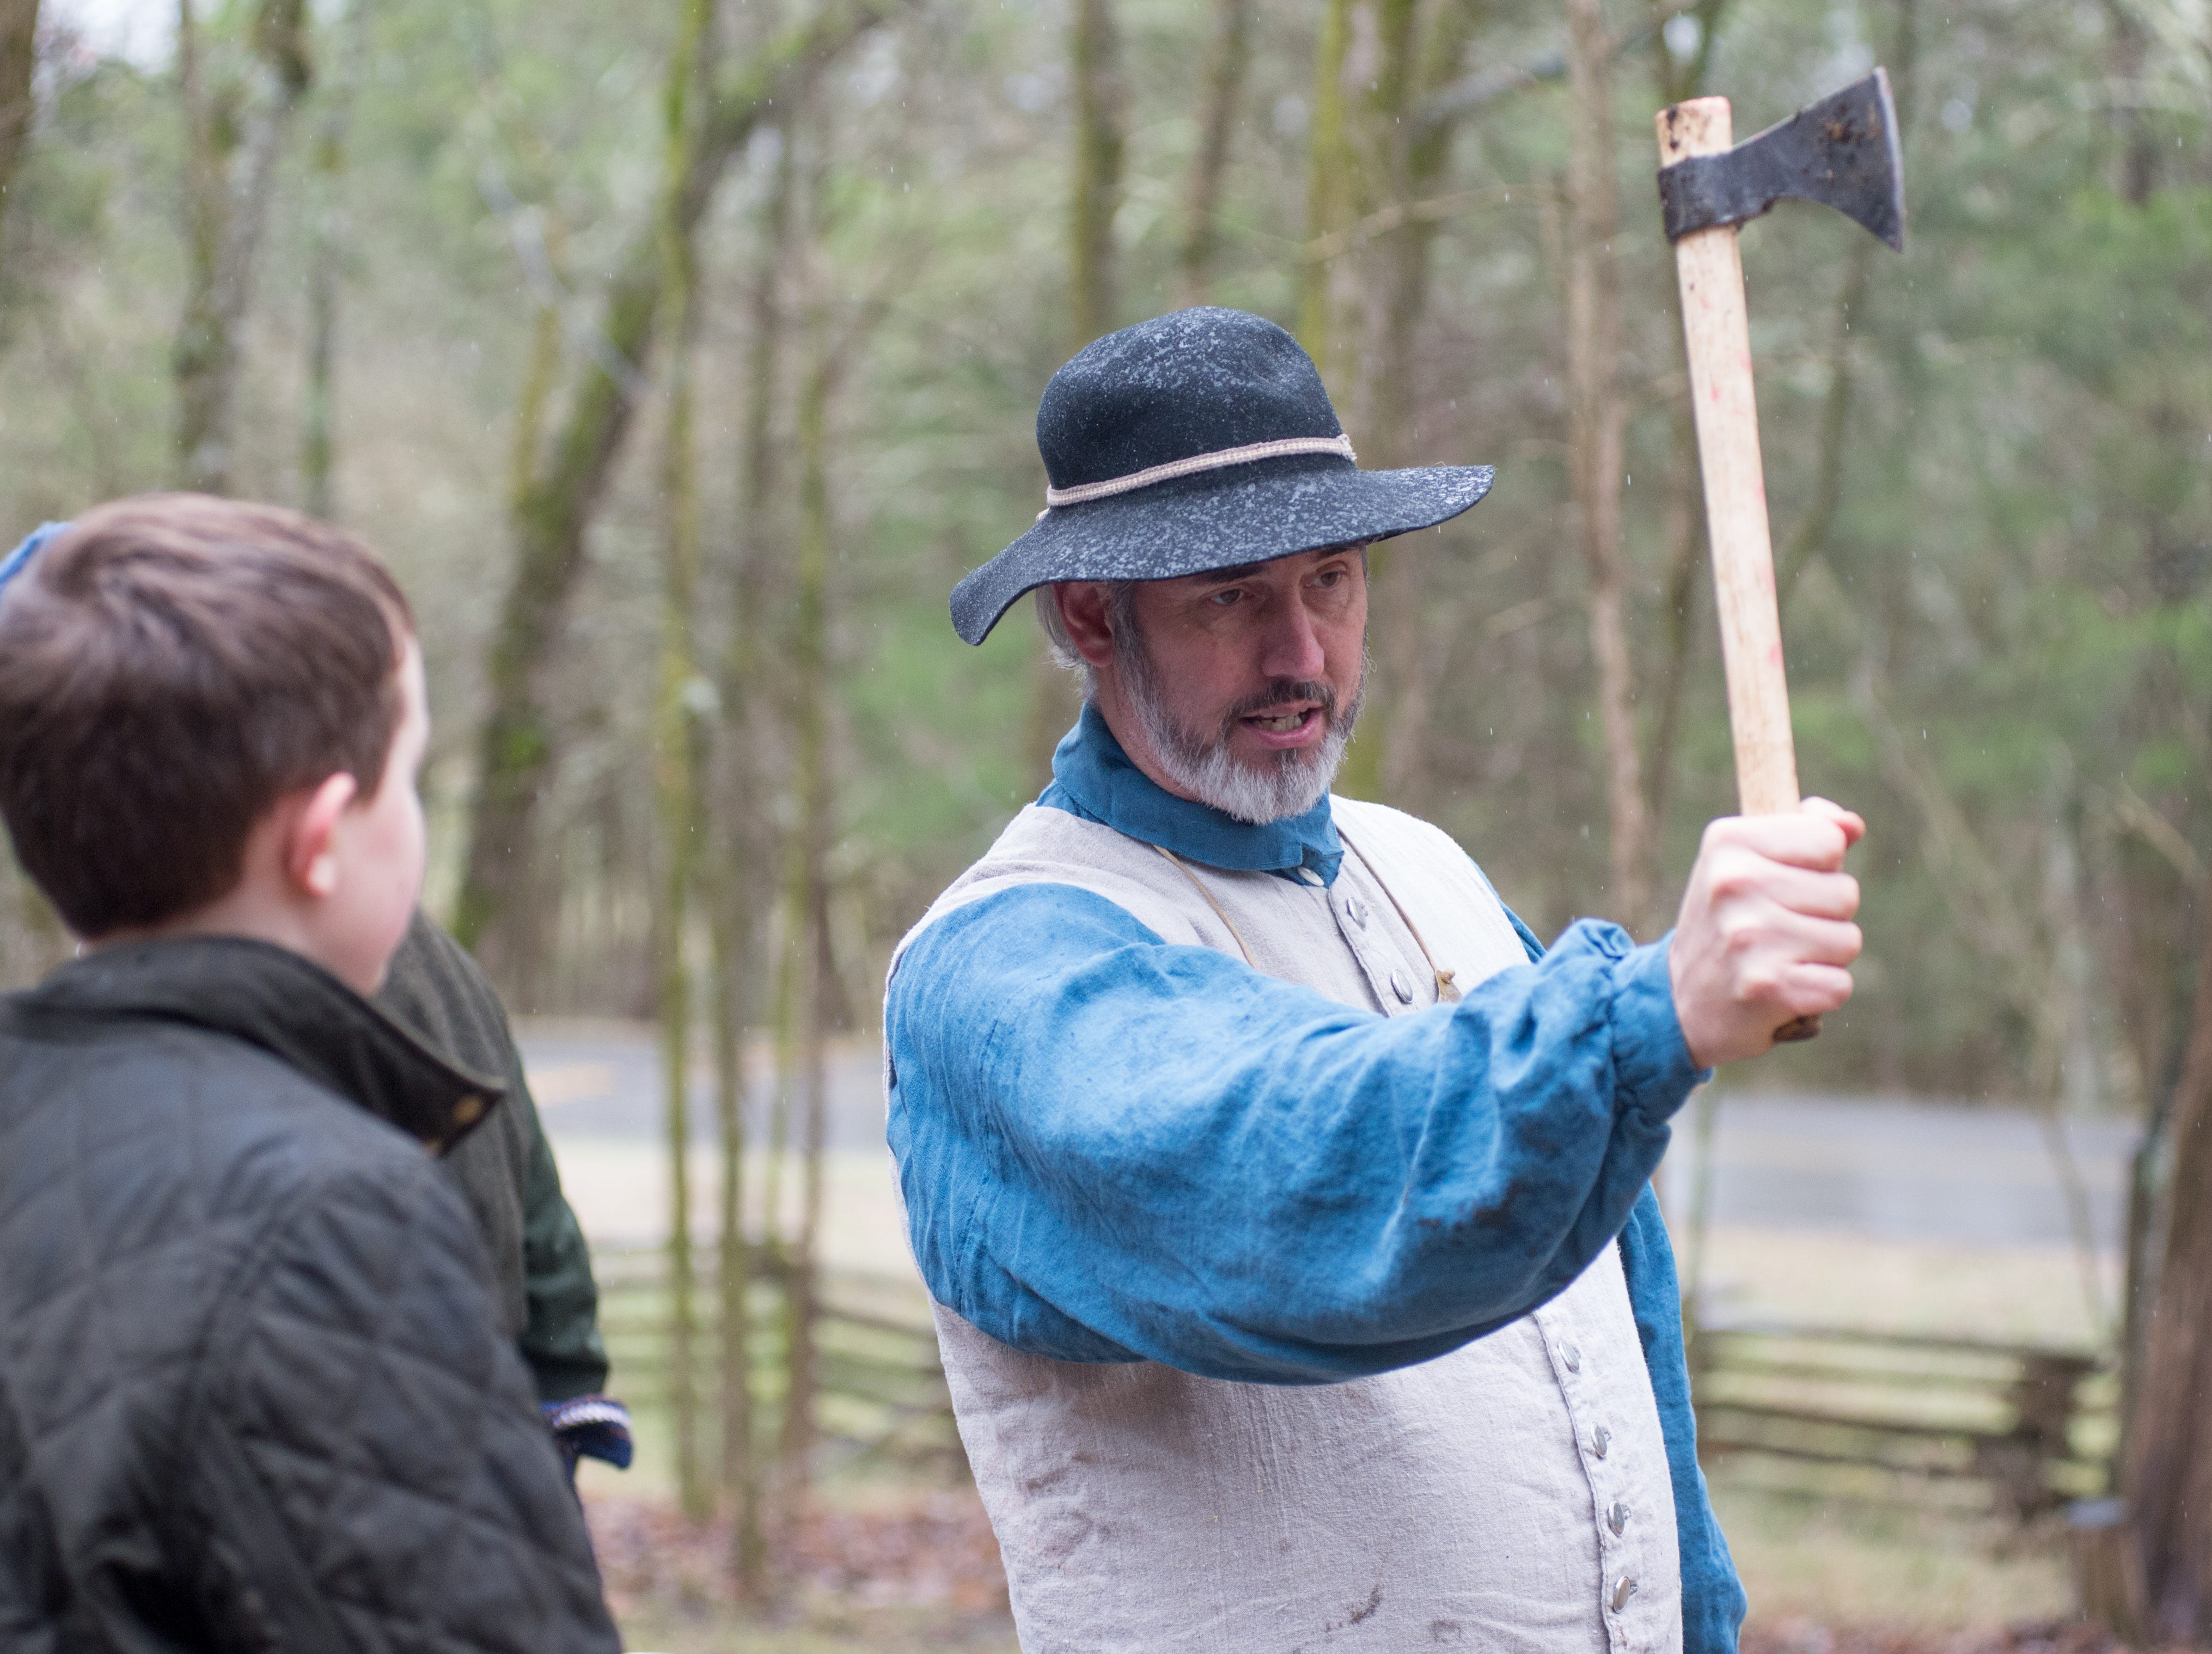 Robert Lanier, the President of the Middle Tennessee History Coalition, helps with a Tomahawk Throwing for Beginners event hosted by Middle Tennessee History Coalition at Bledsoe Creek State Park on Saturday, Jan. 12.